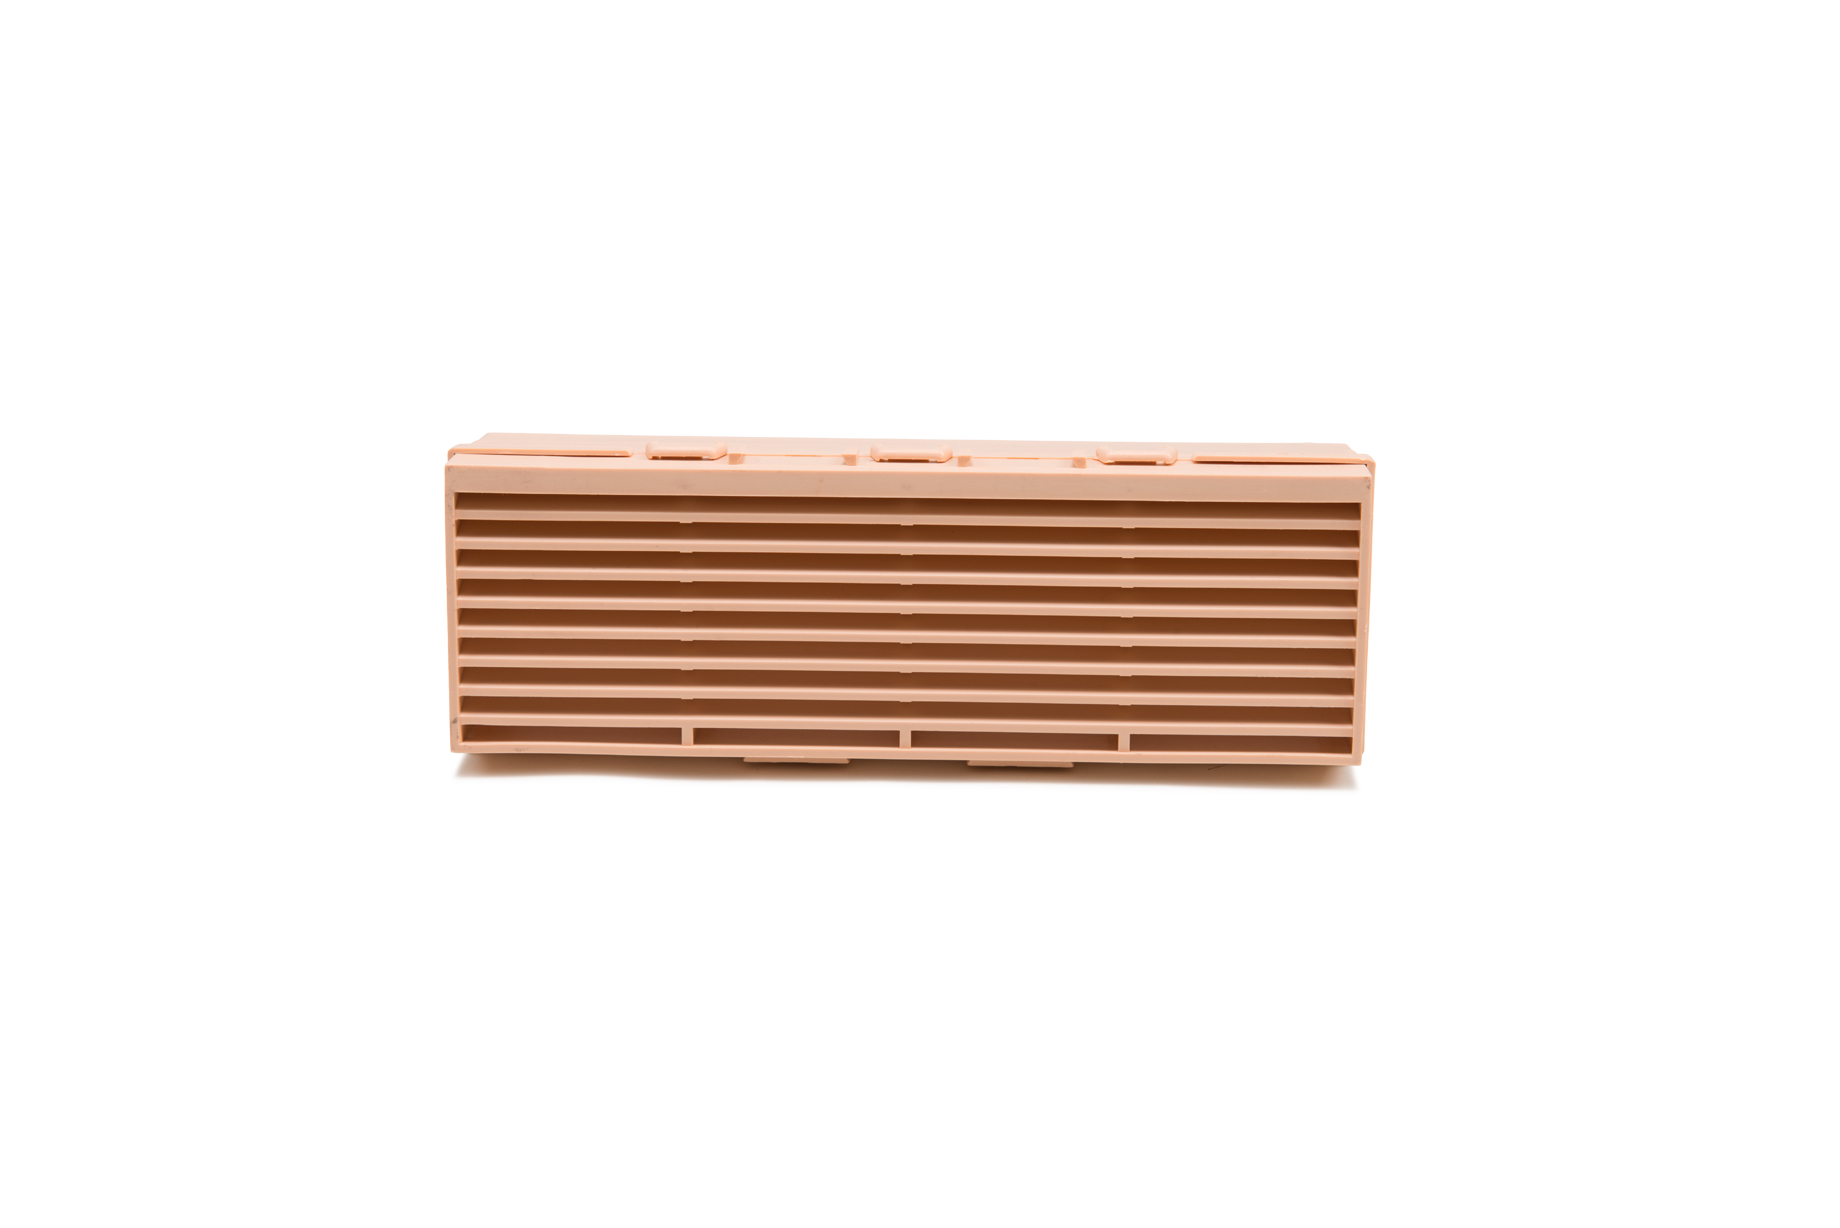 Stand alone photo of the buff combination brick vent